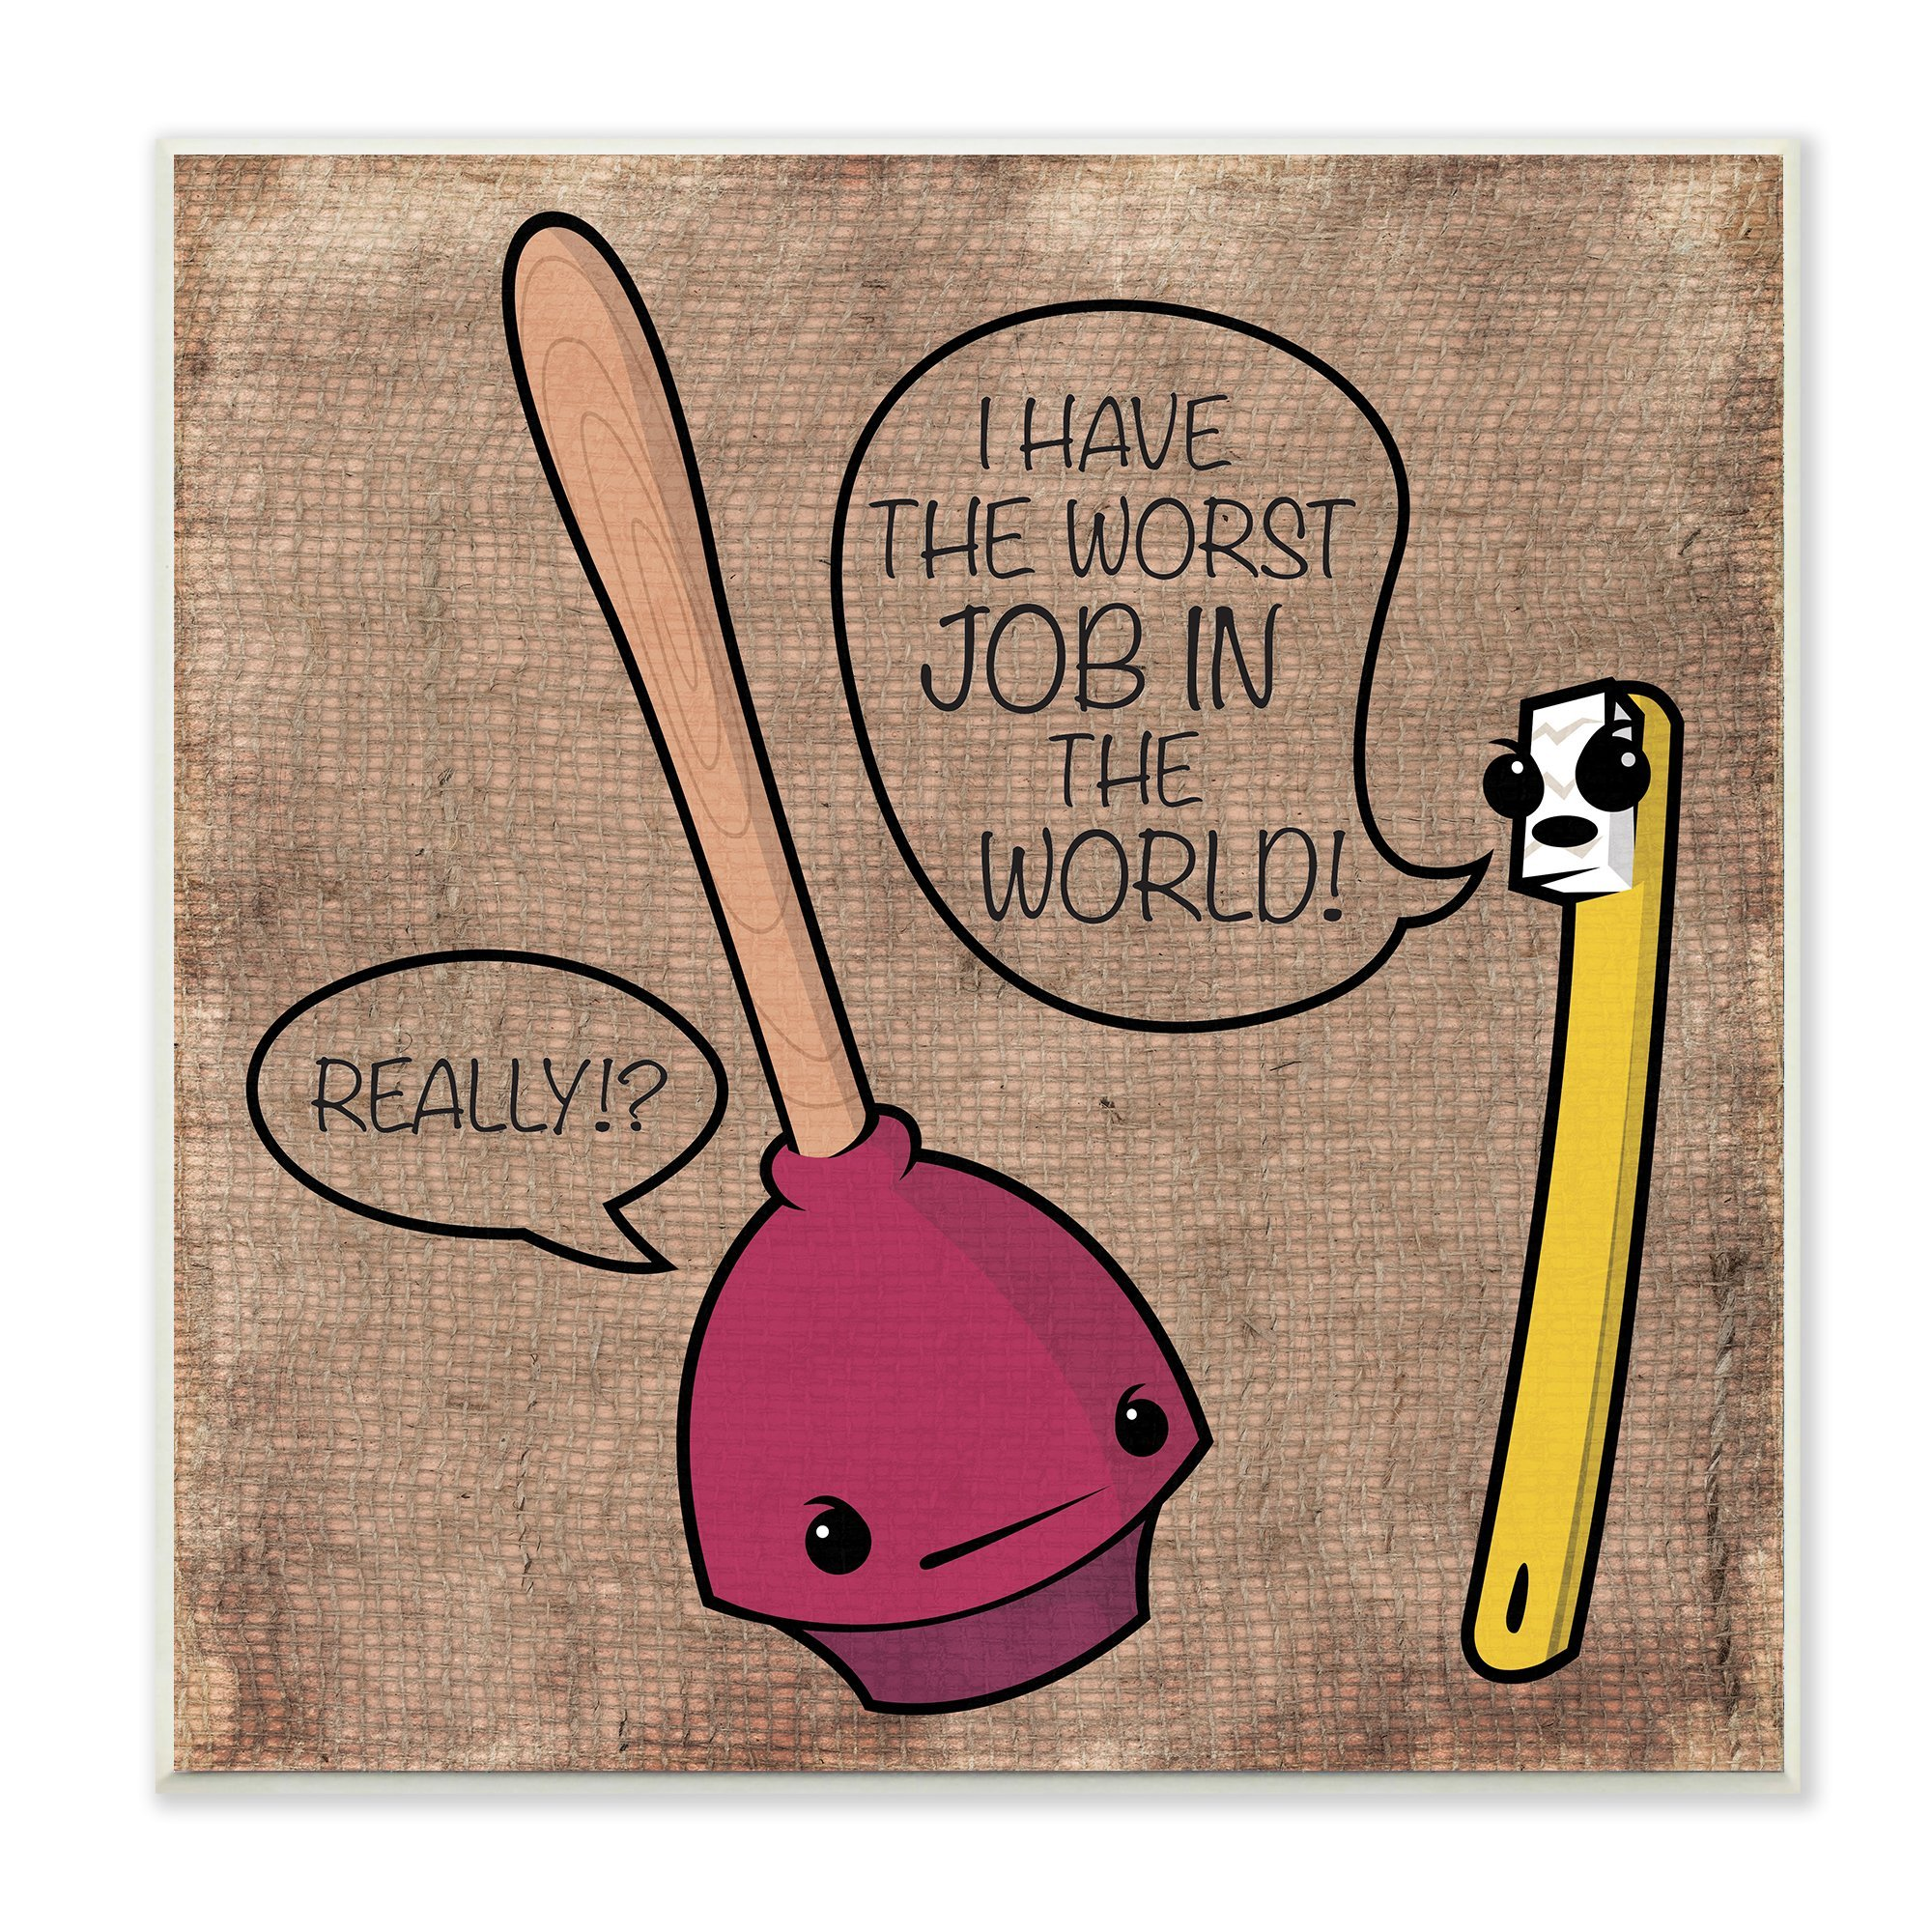 Stupell Home Décor Toothbrush and Plunger Cartoon Humor Bath Wall Plaque Art, 12 x 0.5 x 12, Proudly Made in USA